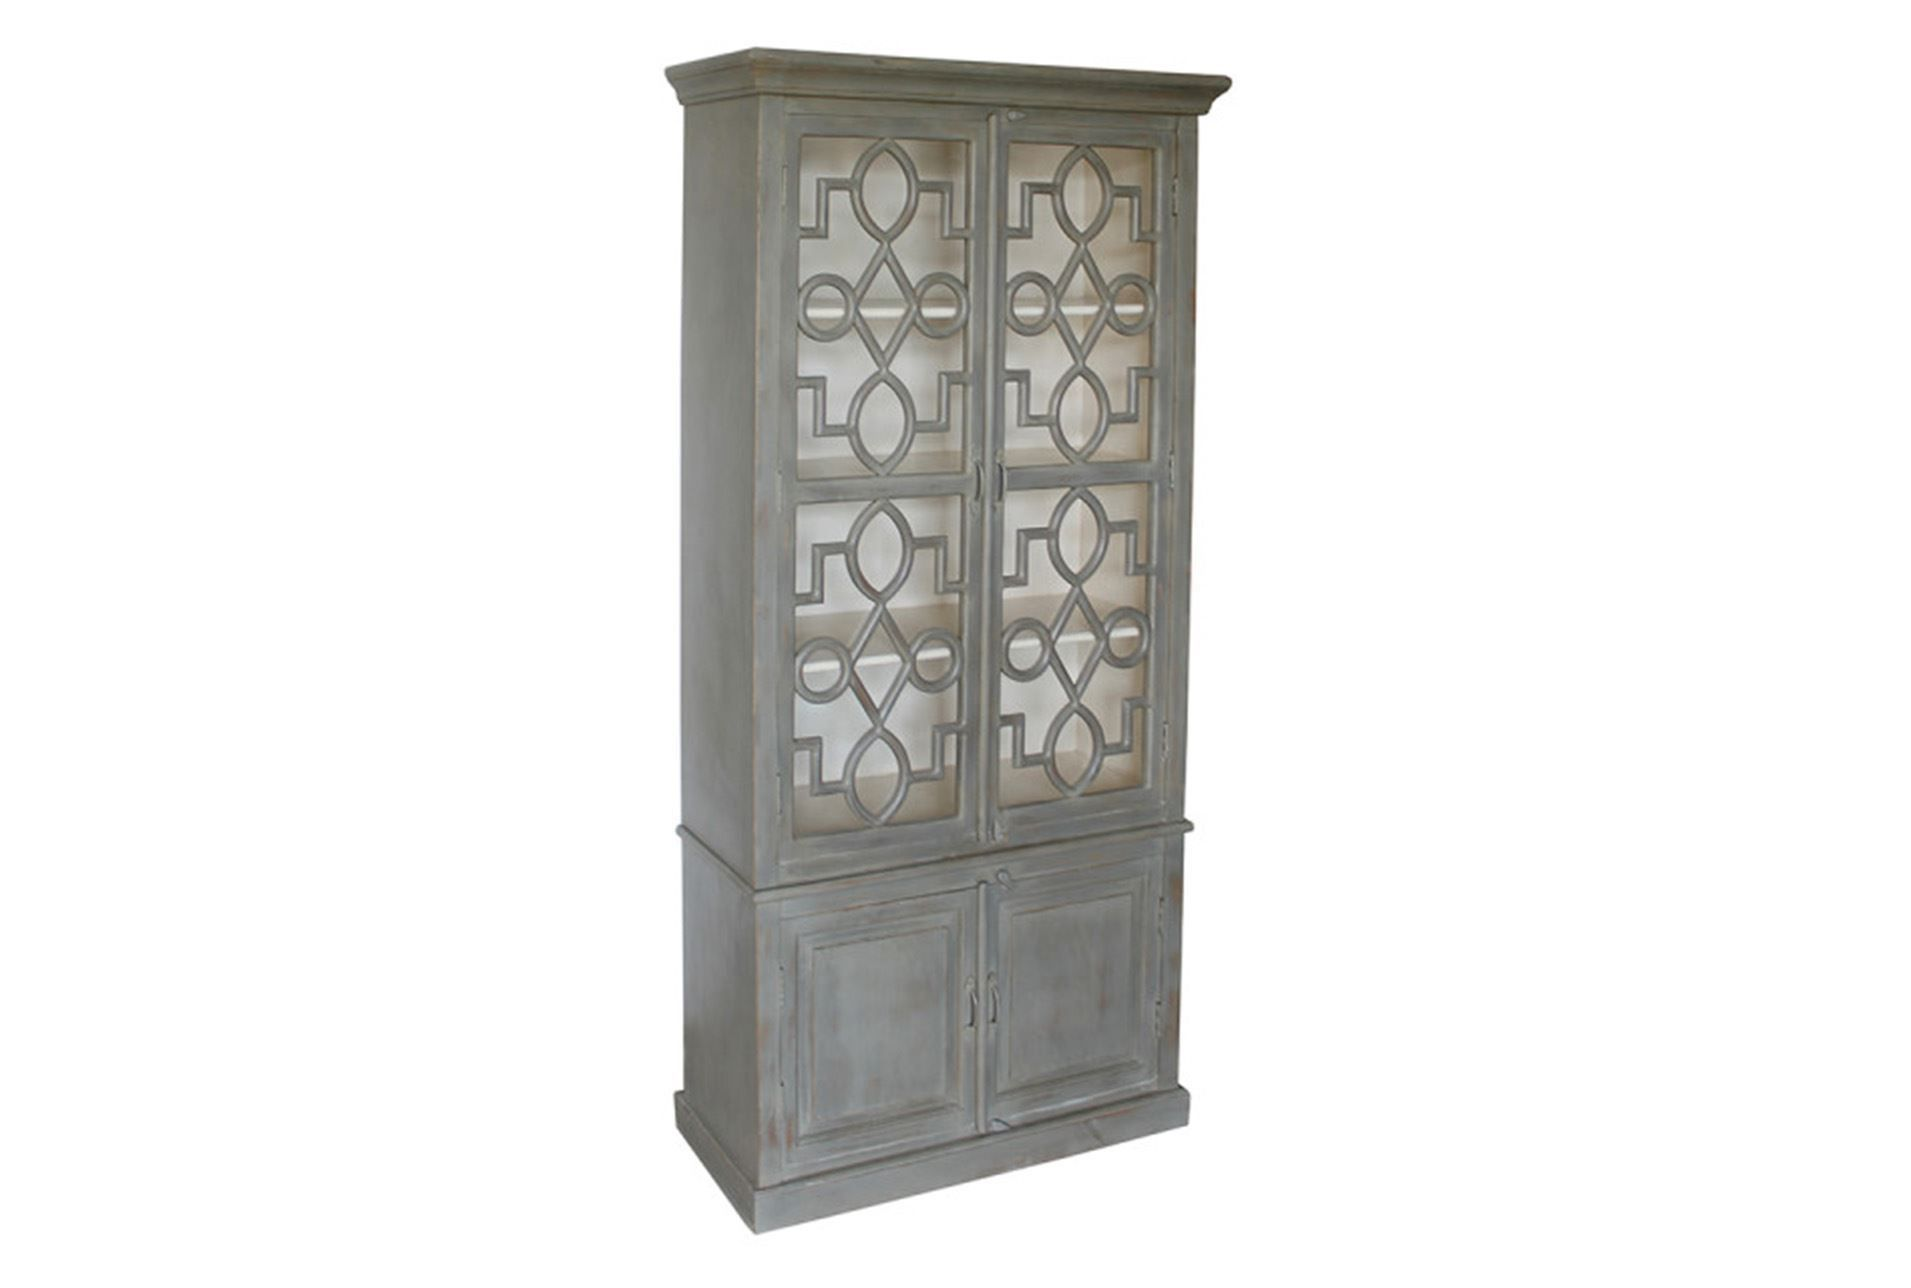 Otb 91 Inch Tall Cabinet, Beige | Pinterest | Paint finishes and Room